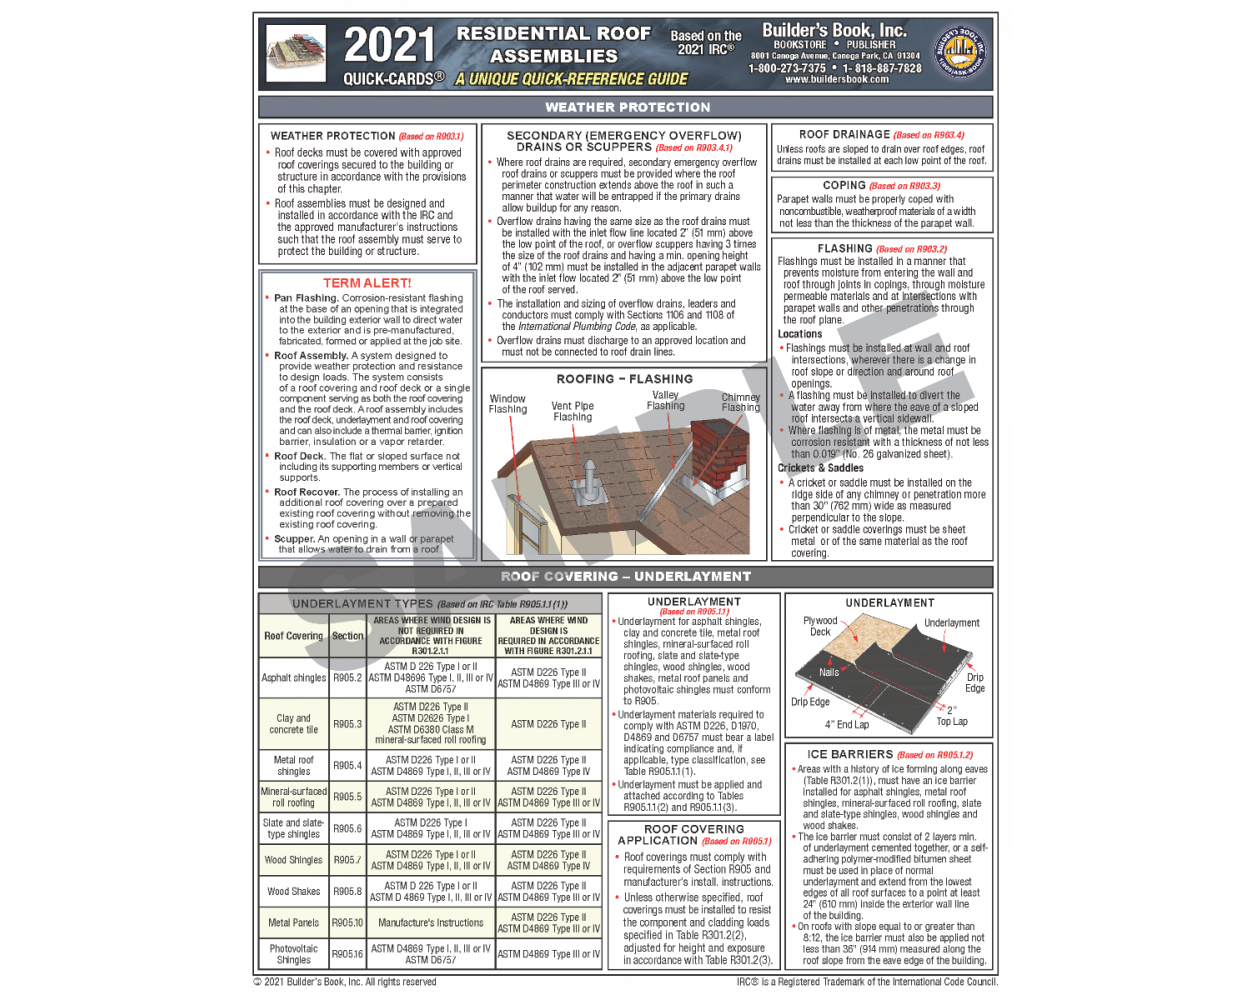 2021 Residential Roof Assemblies based on the IRC